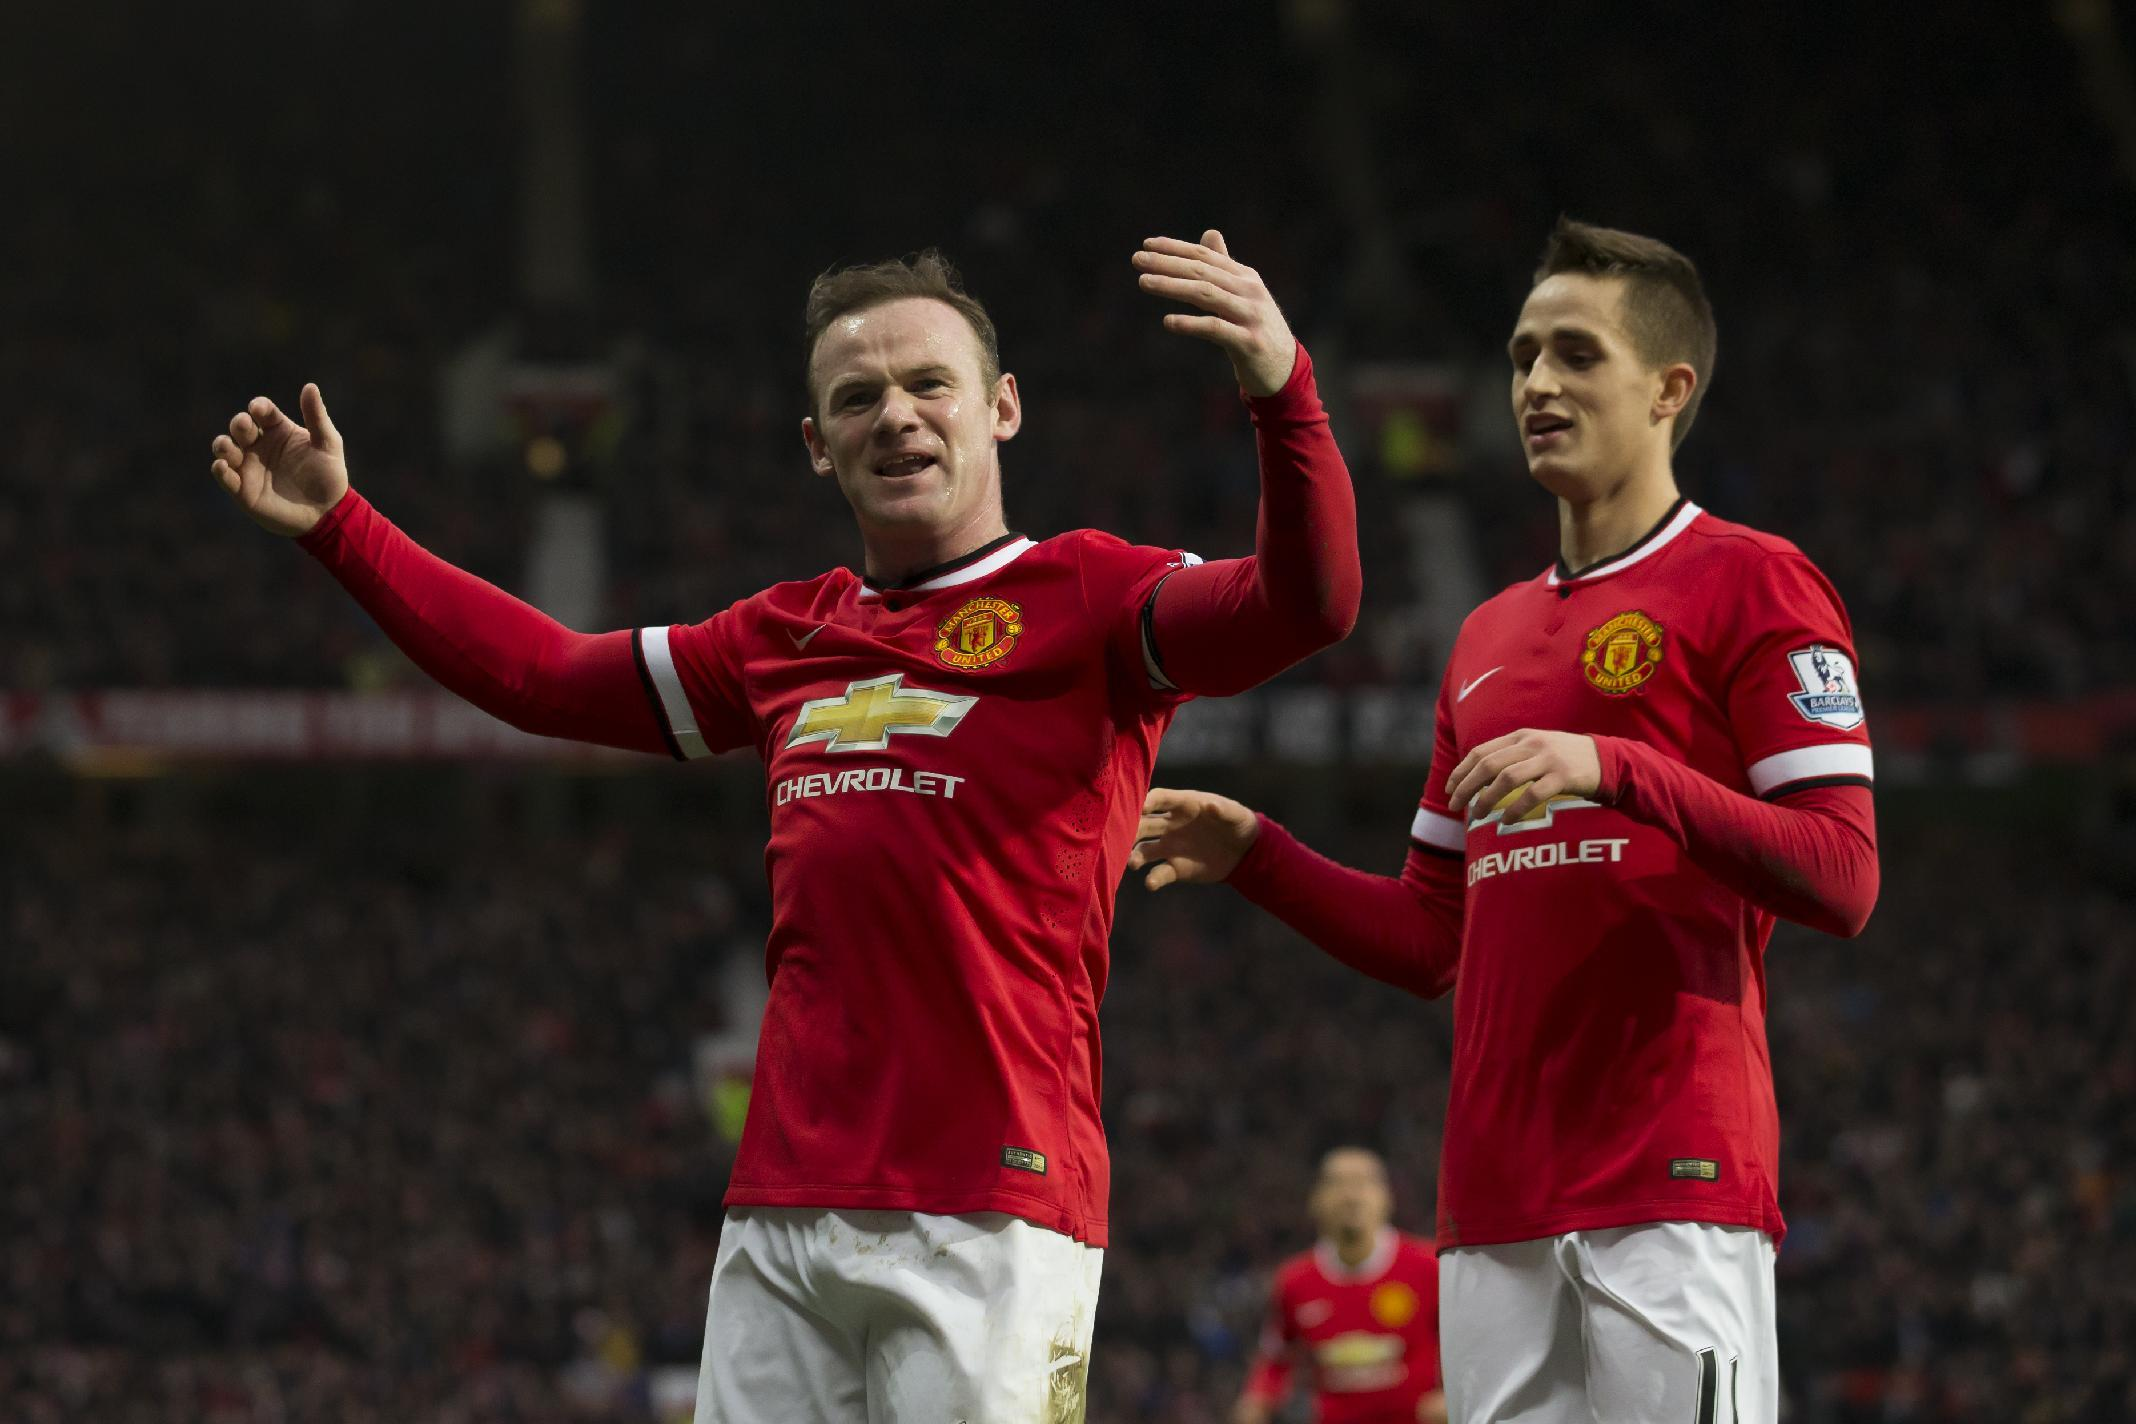 Referee red card overshadows Rooney goals in EPL